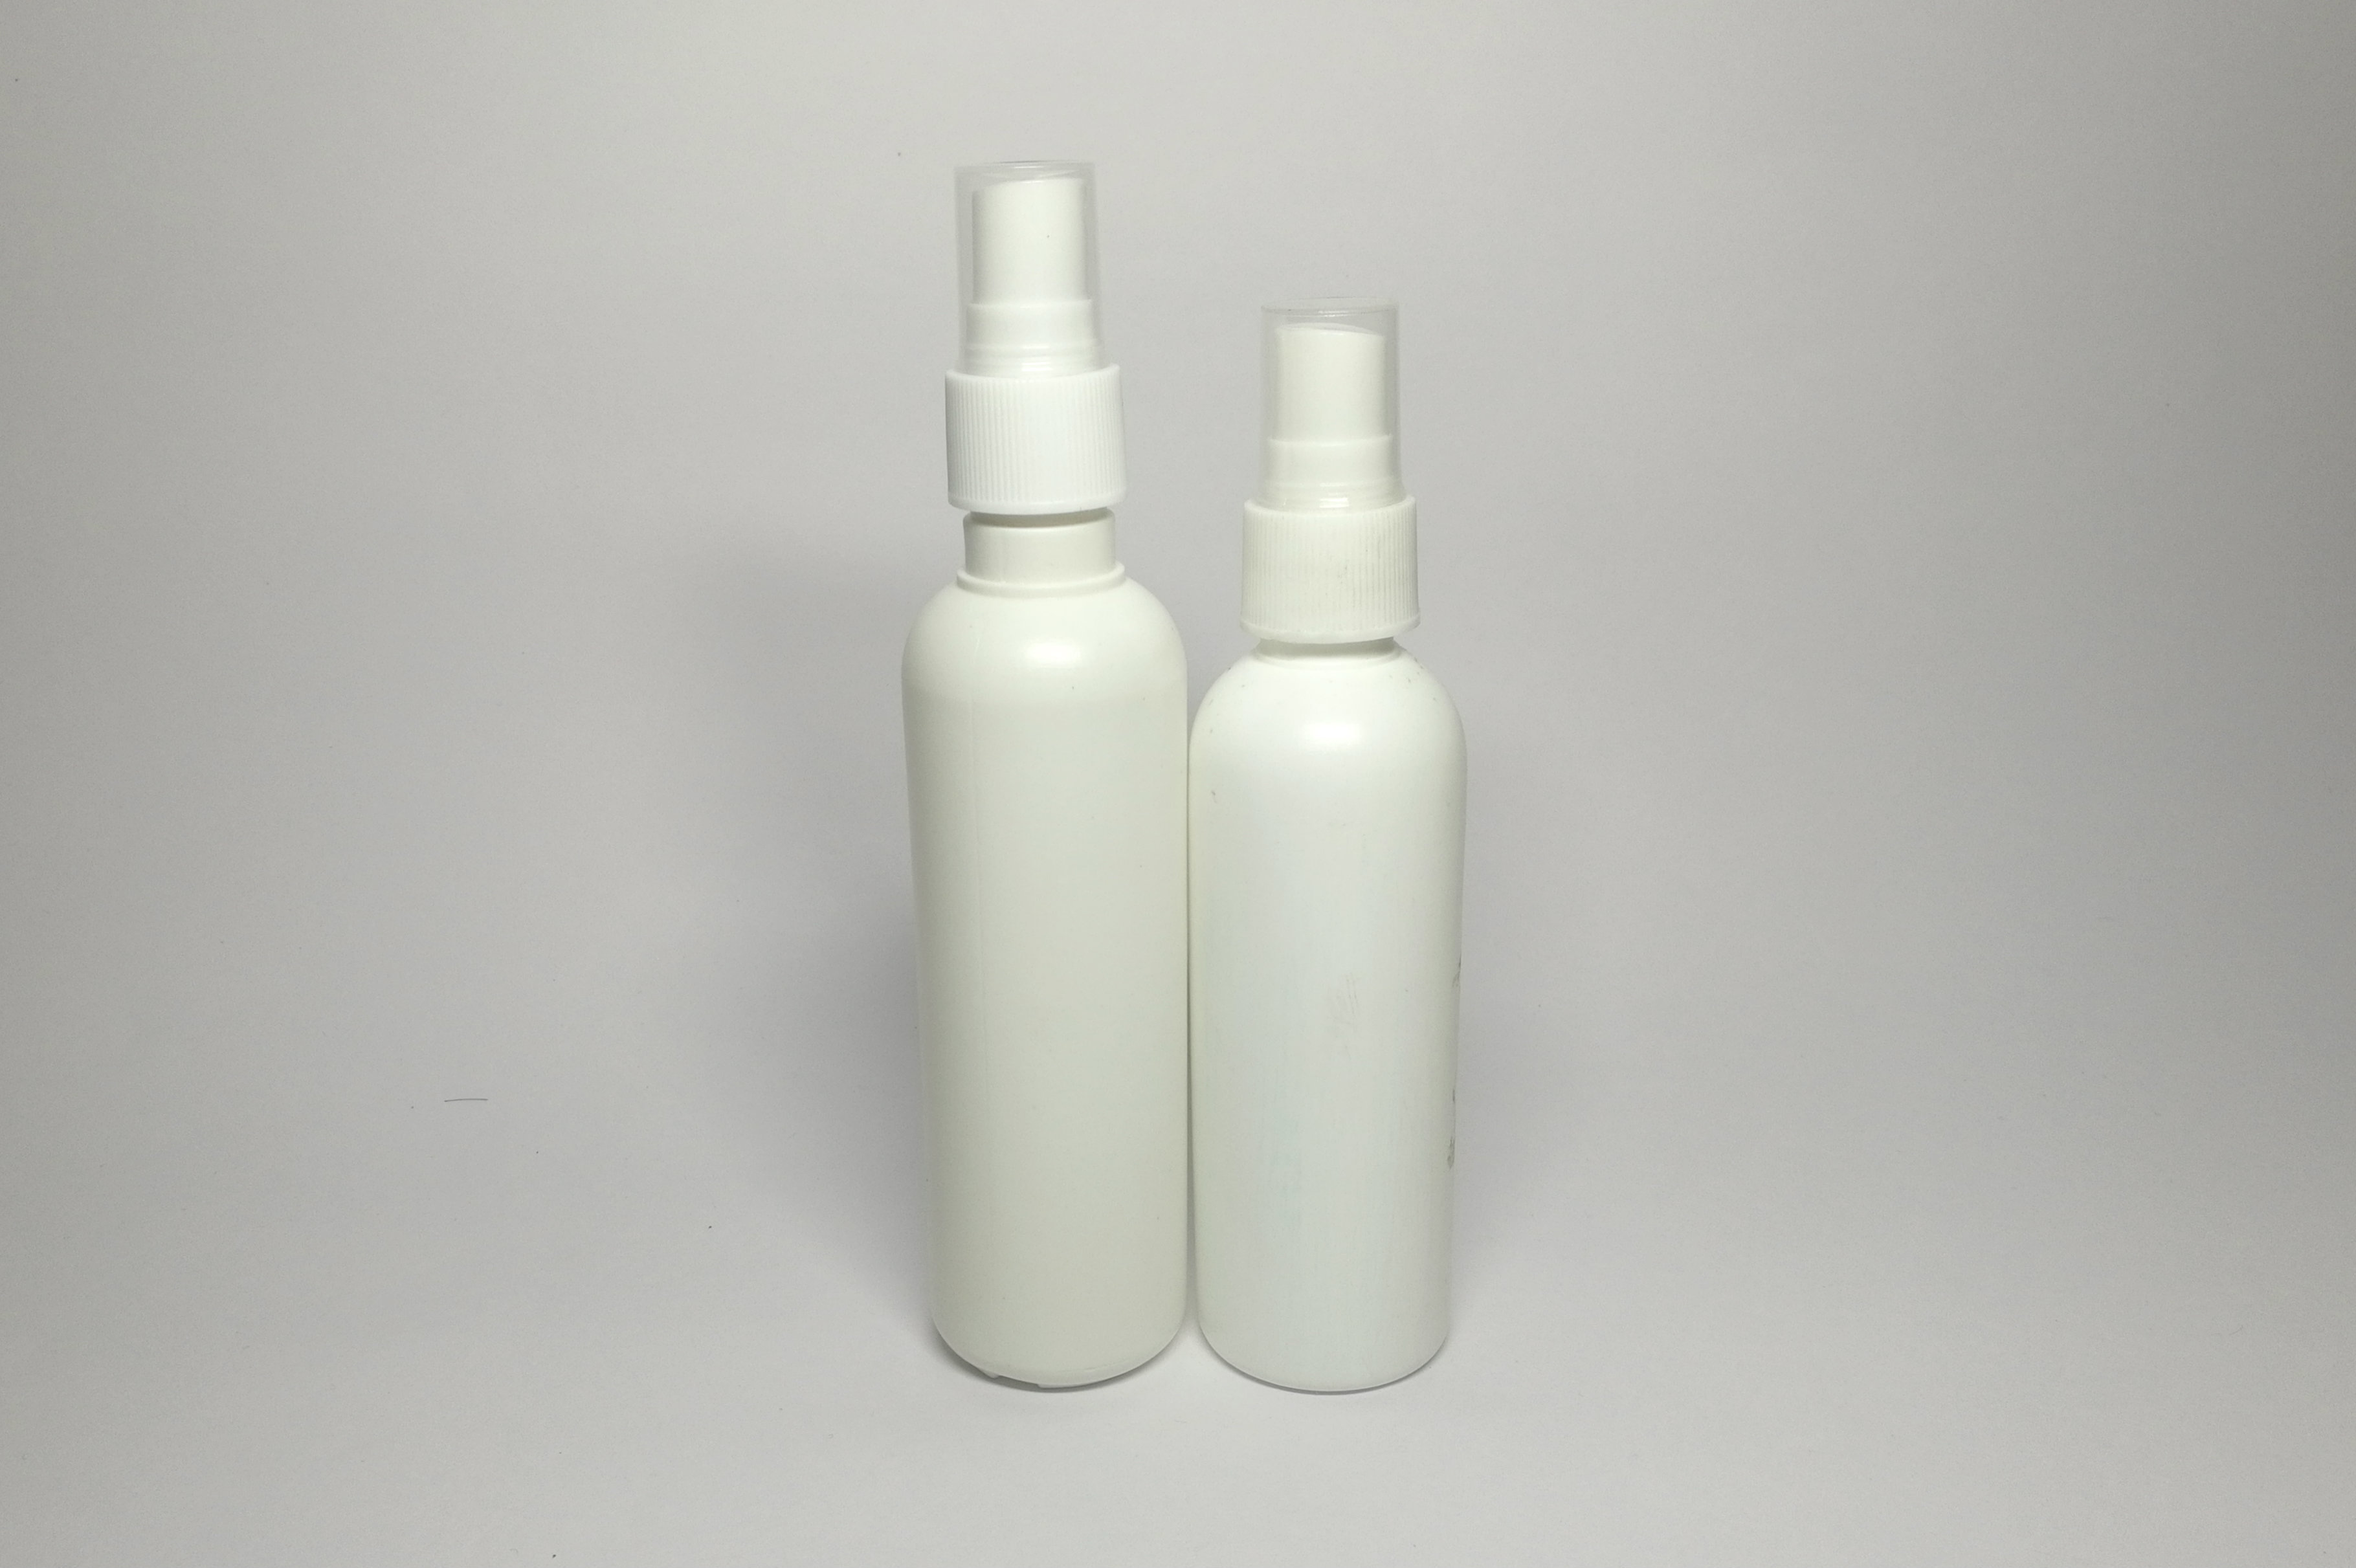 Lotion Bottle with Pump